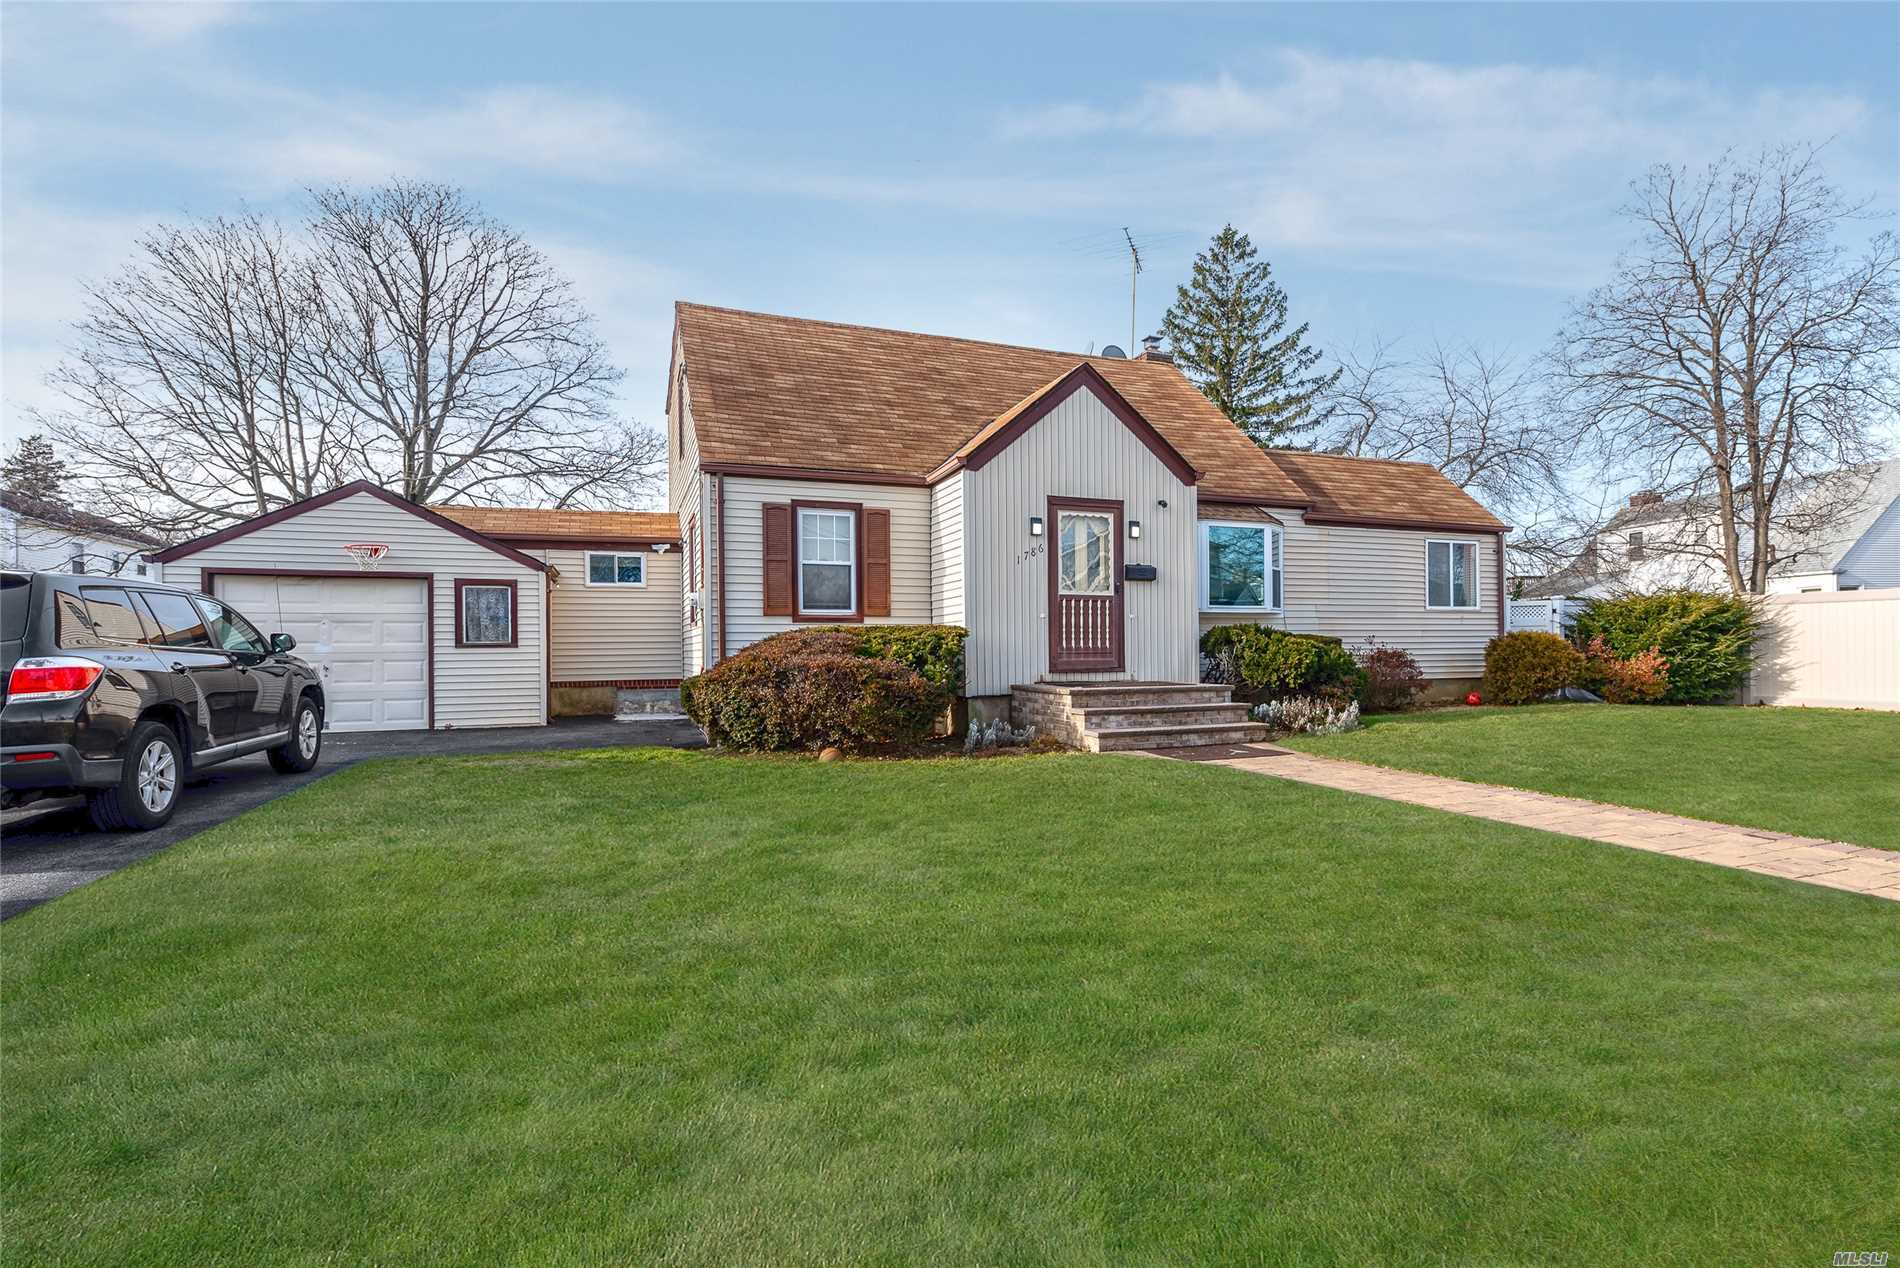 1786 Queen St N. Bellmore, NY 11710